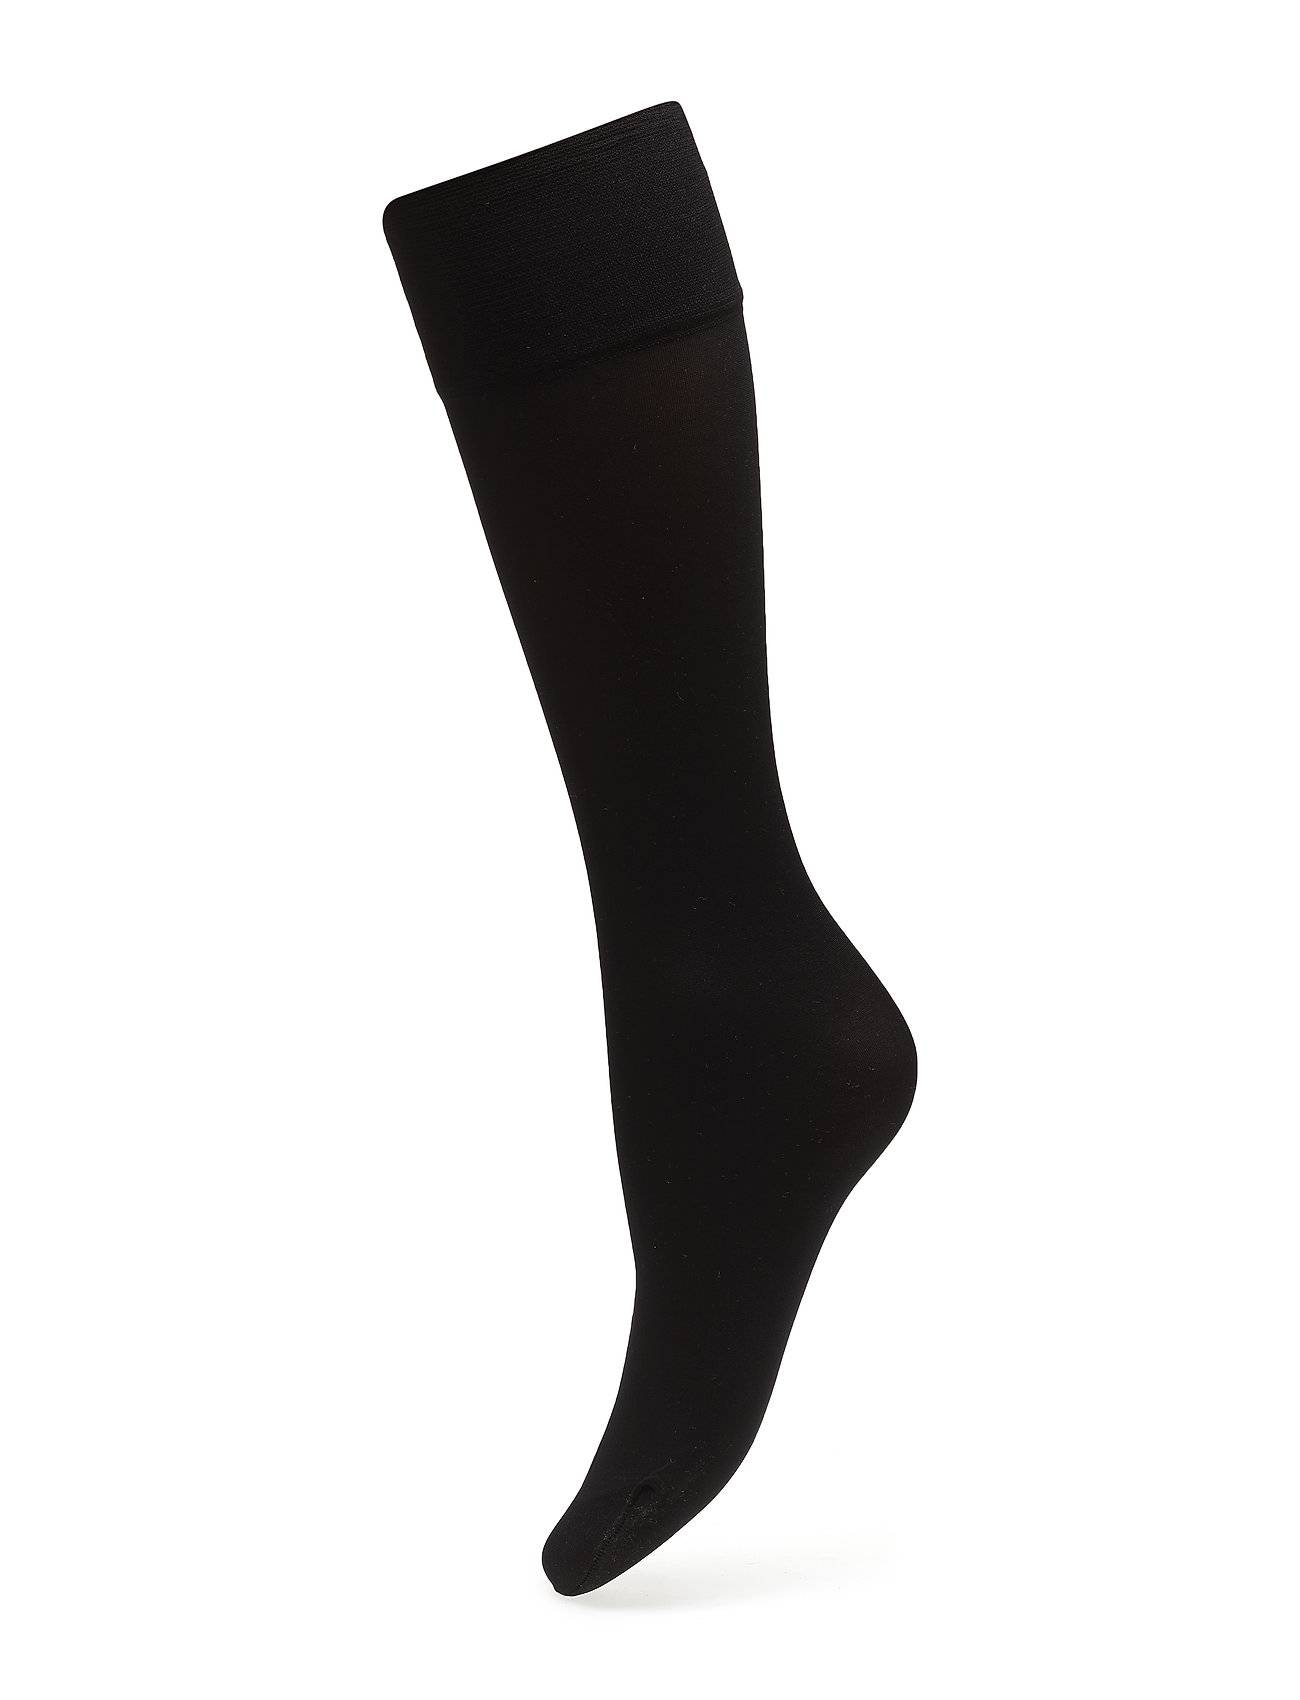 Swedish Stockings Irma Support Knee-High 60d